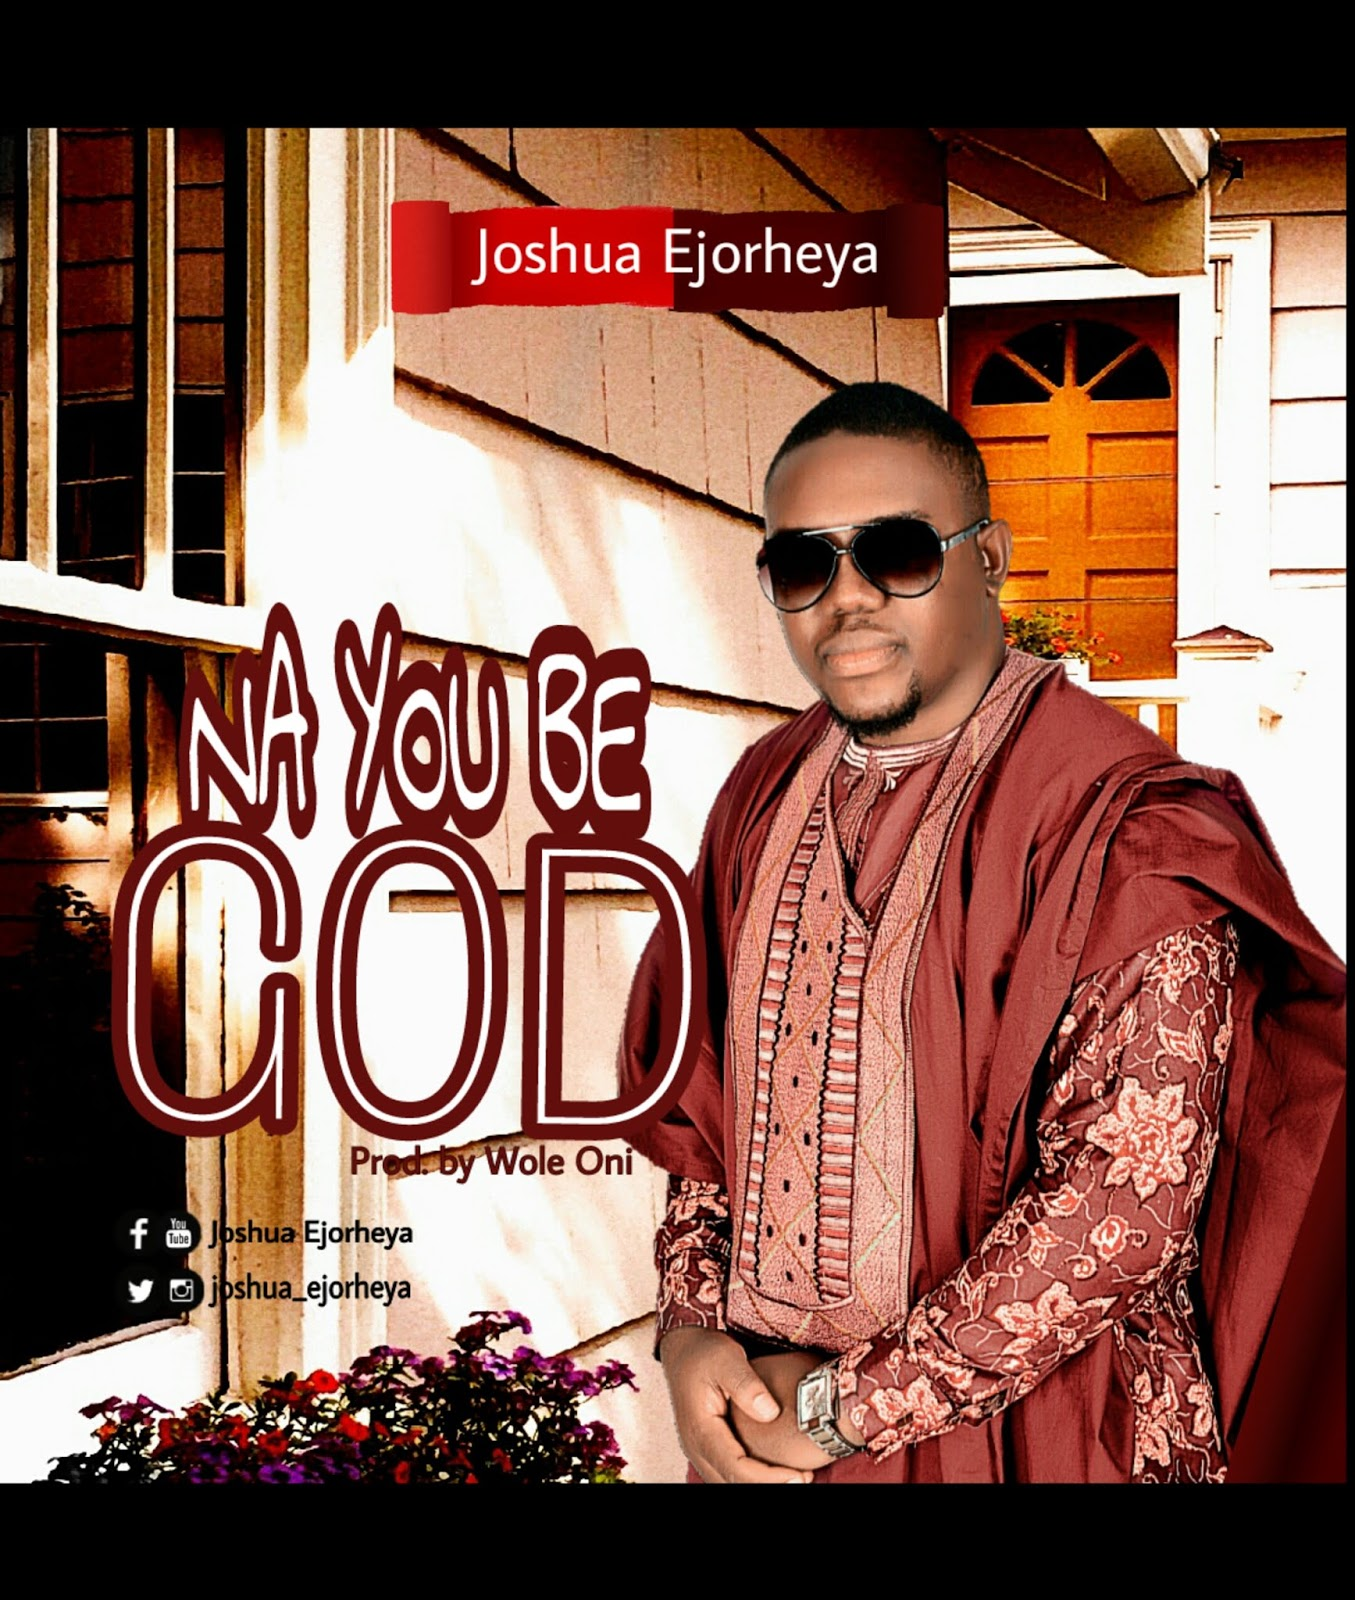 Na You Be God. Rev. Joshua Ejorheya